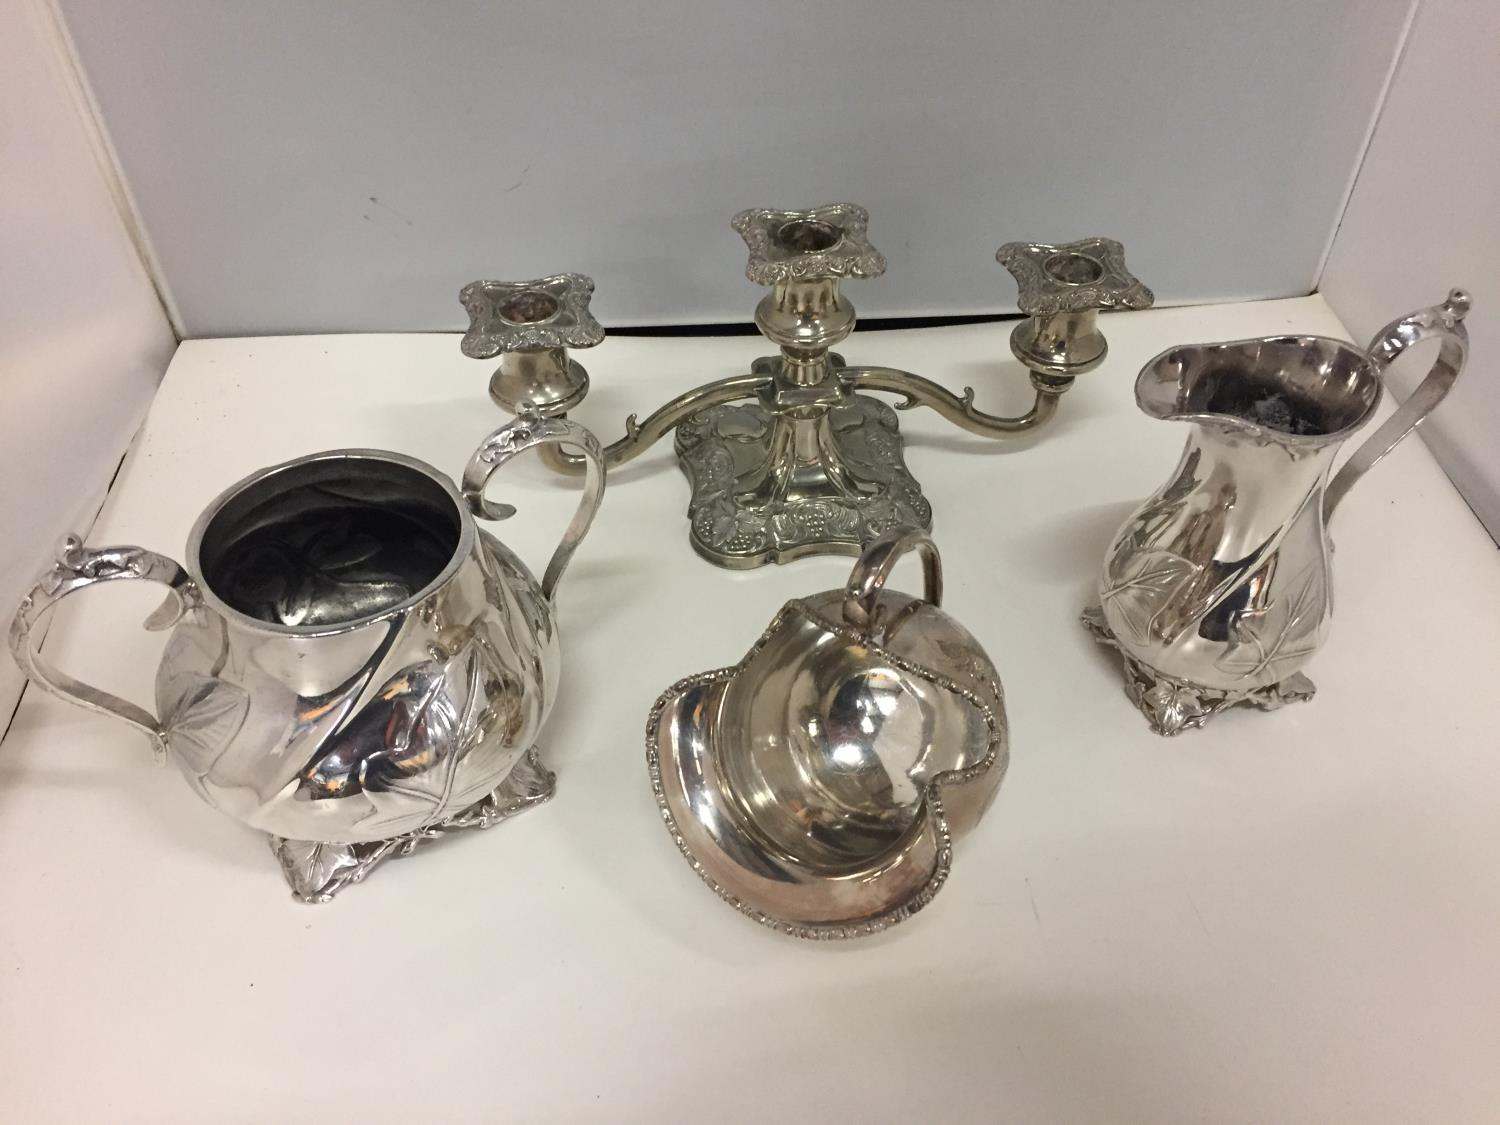 A SELECTION OF SILVER PLATED ITEMS TO INCLUDE A JUG, TWIN HANDLED VESSEL, CANDELABRA ETC - Image 2 of 10